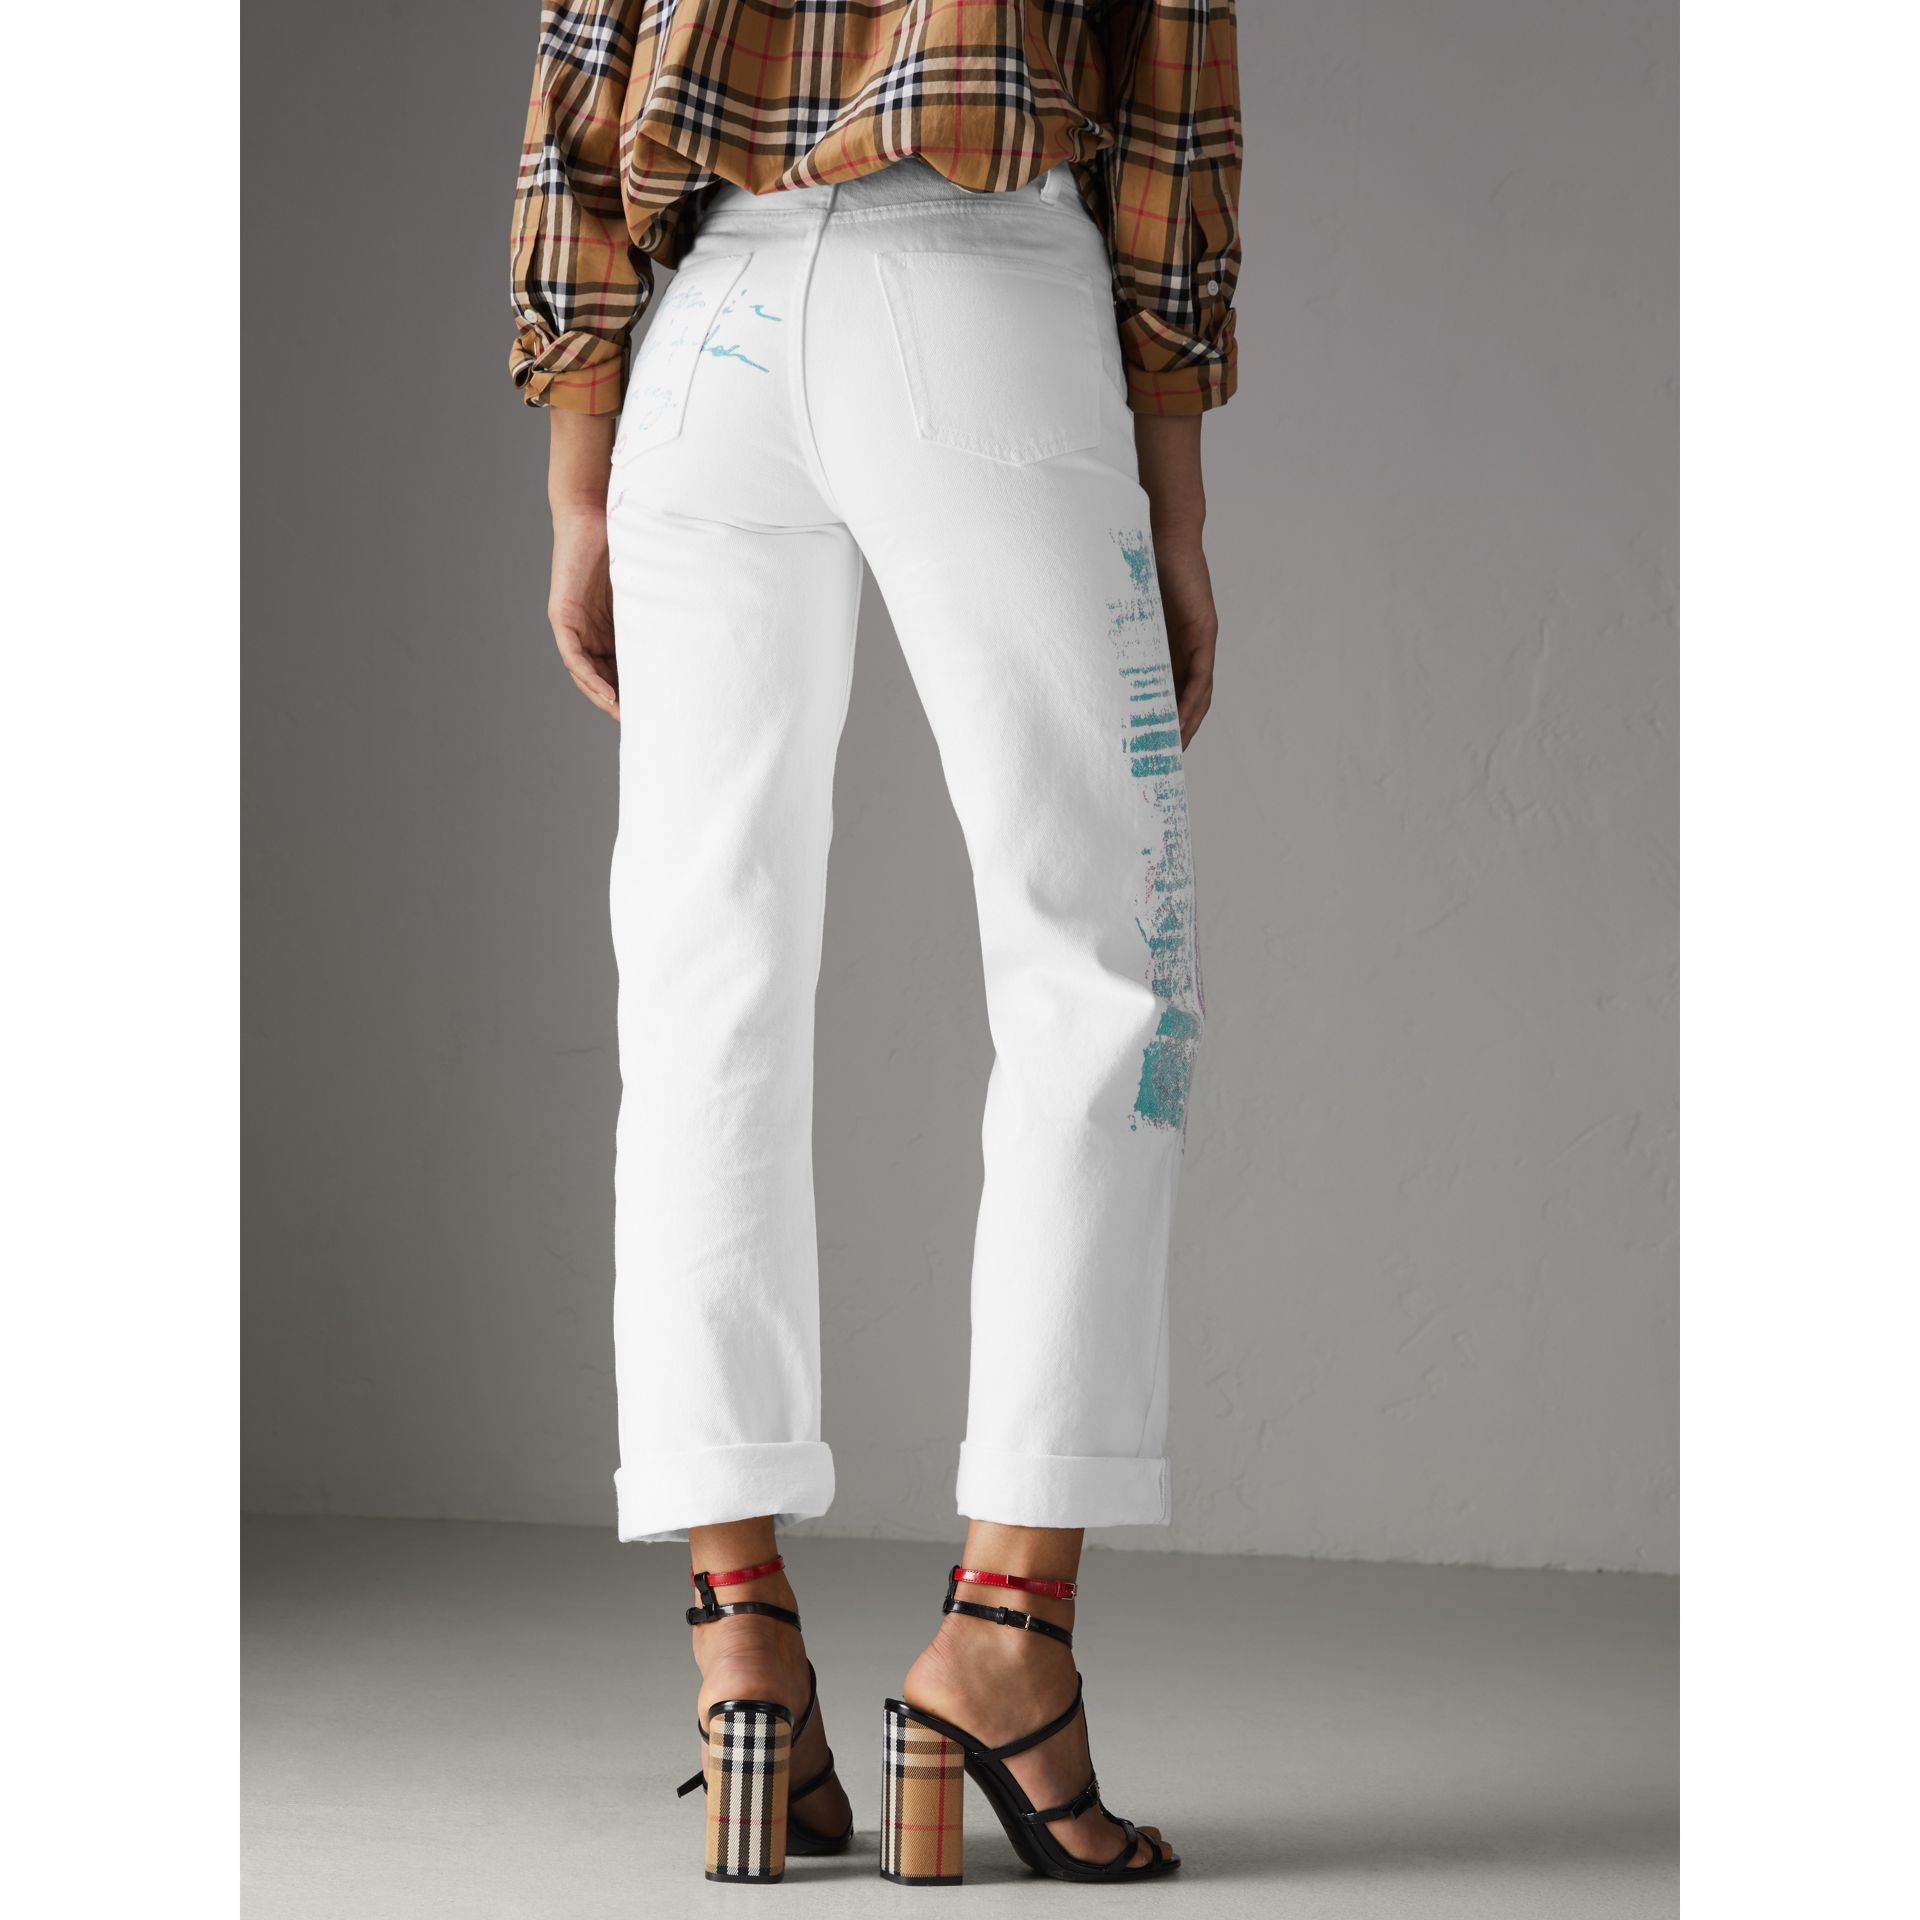 Straight Fit Postcard Print Japanese Denim Jeans in Natural White - Women | Burberry Canada - gallery image 2